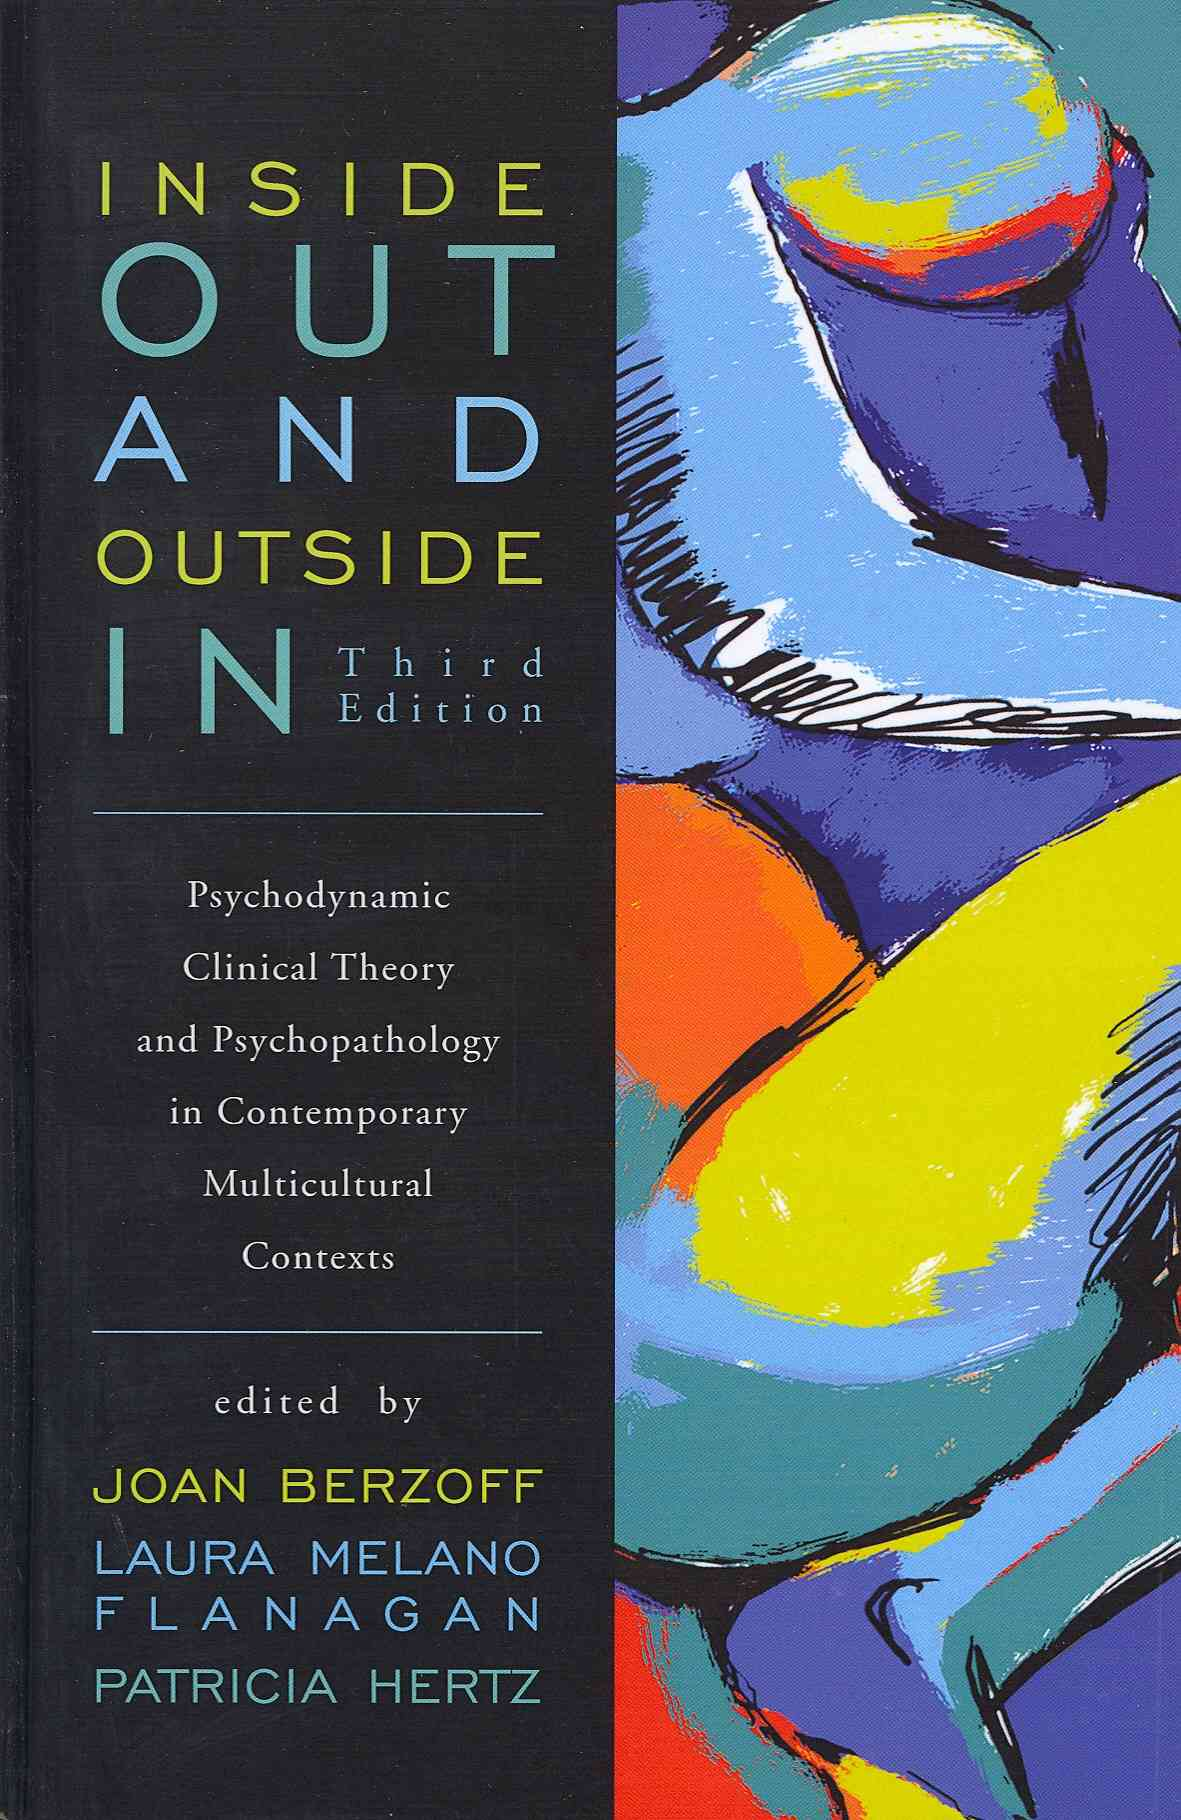 Inside Out and Outside In: Psychodynamic Clinical Theory and Psychopathology in Contemporary Multicultural Contexts (Hardcover)